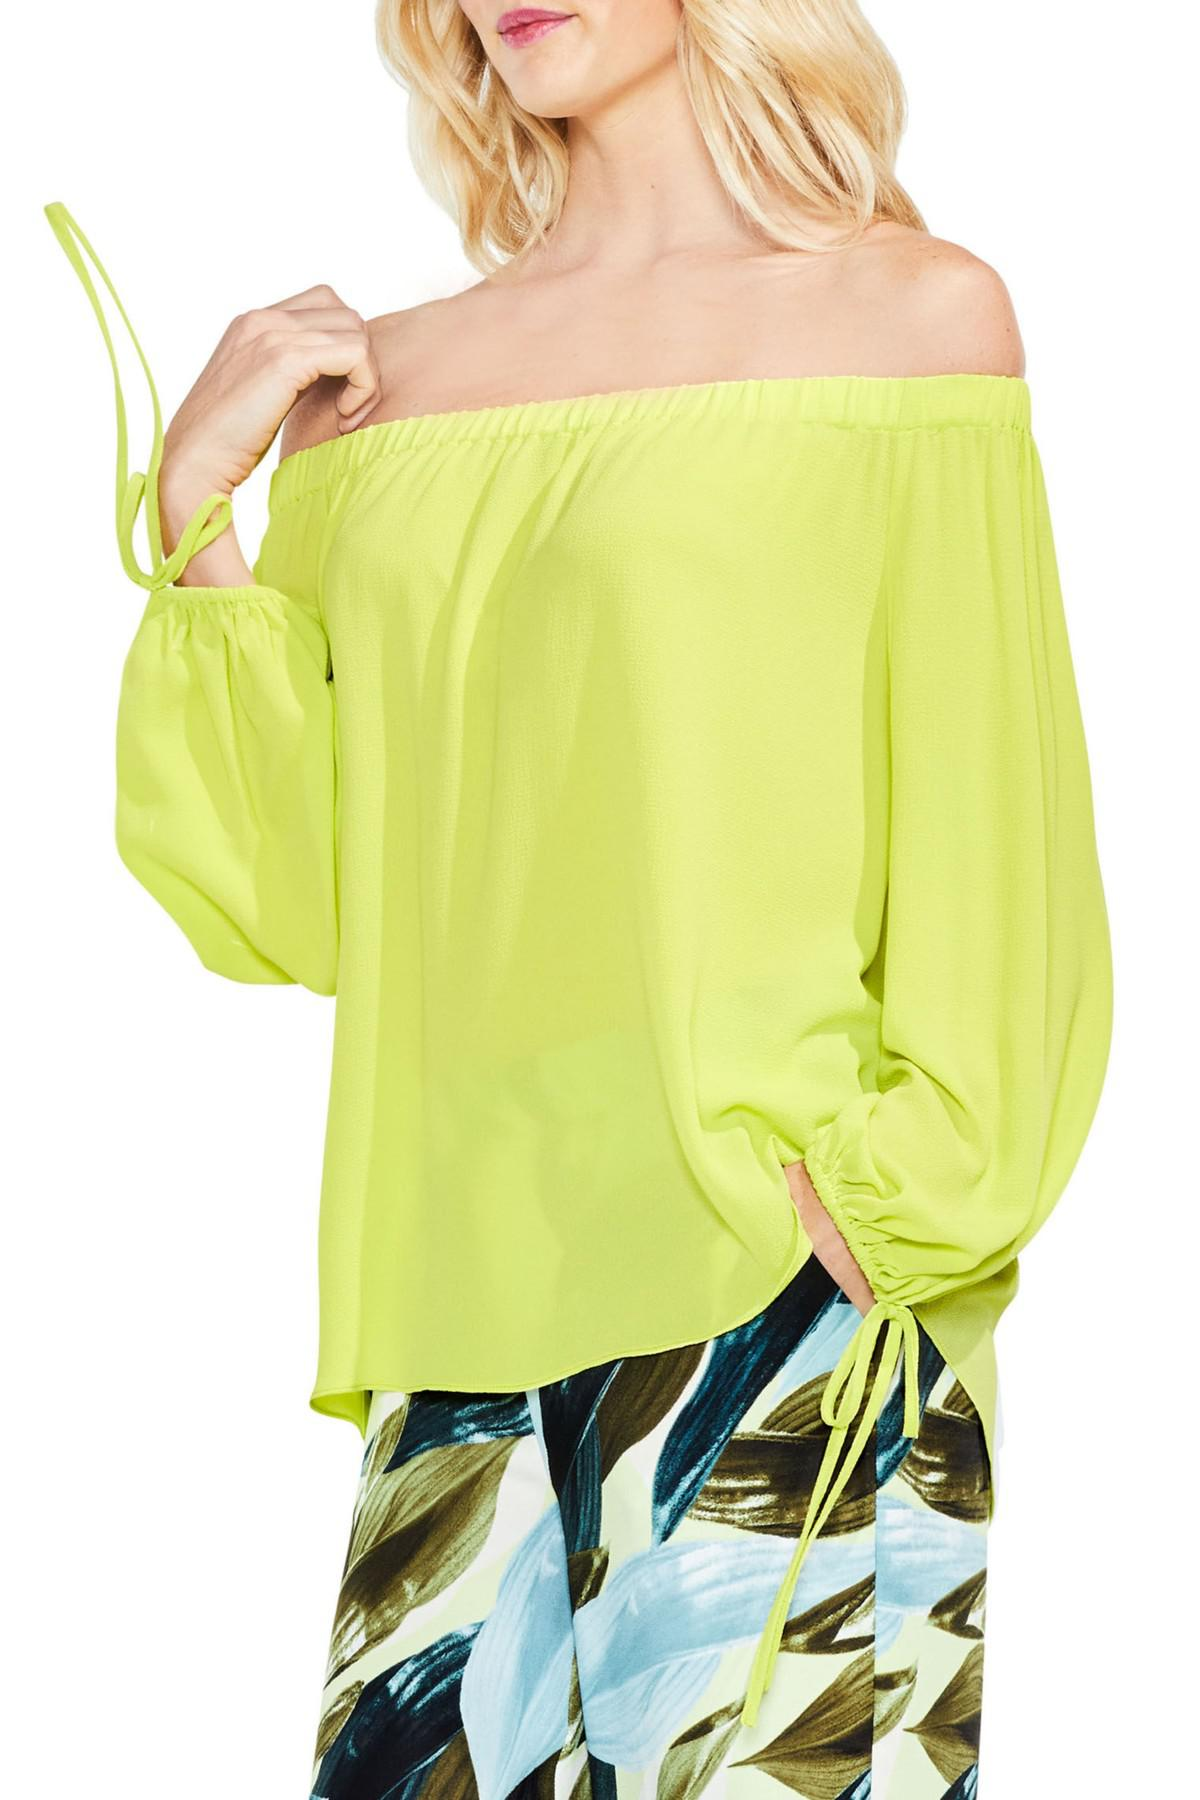 f7ddb4d62ed59 Lyst - Vince Camuto Tie-cuff Off-the-shoulder Blouse in Yellow